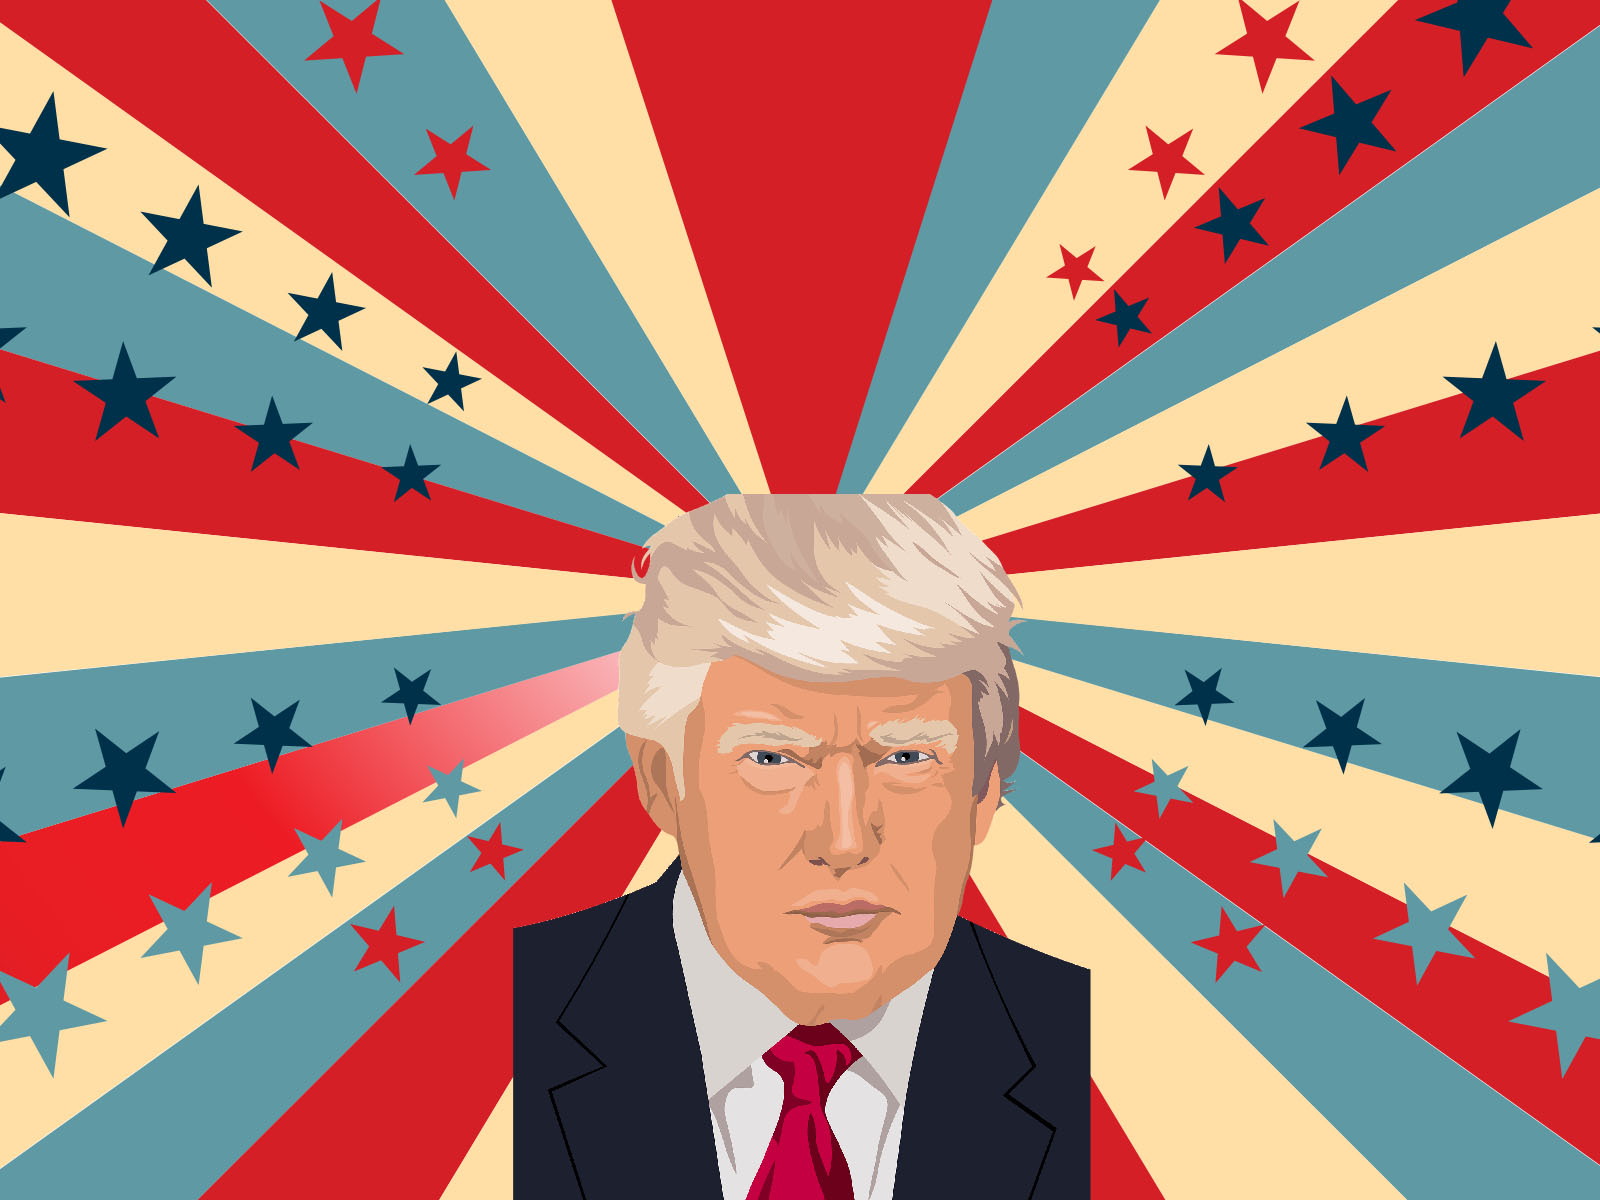 Donald Trump PPT Background